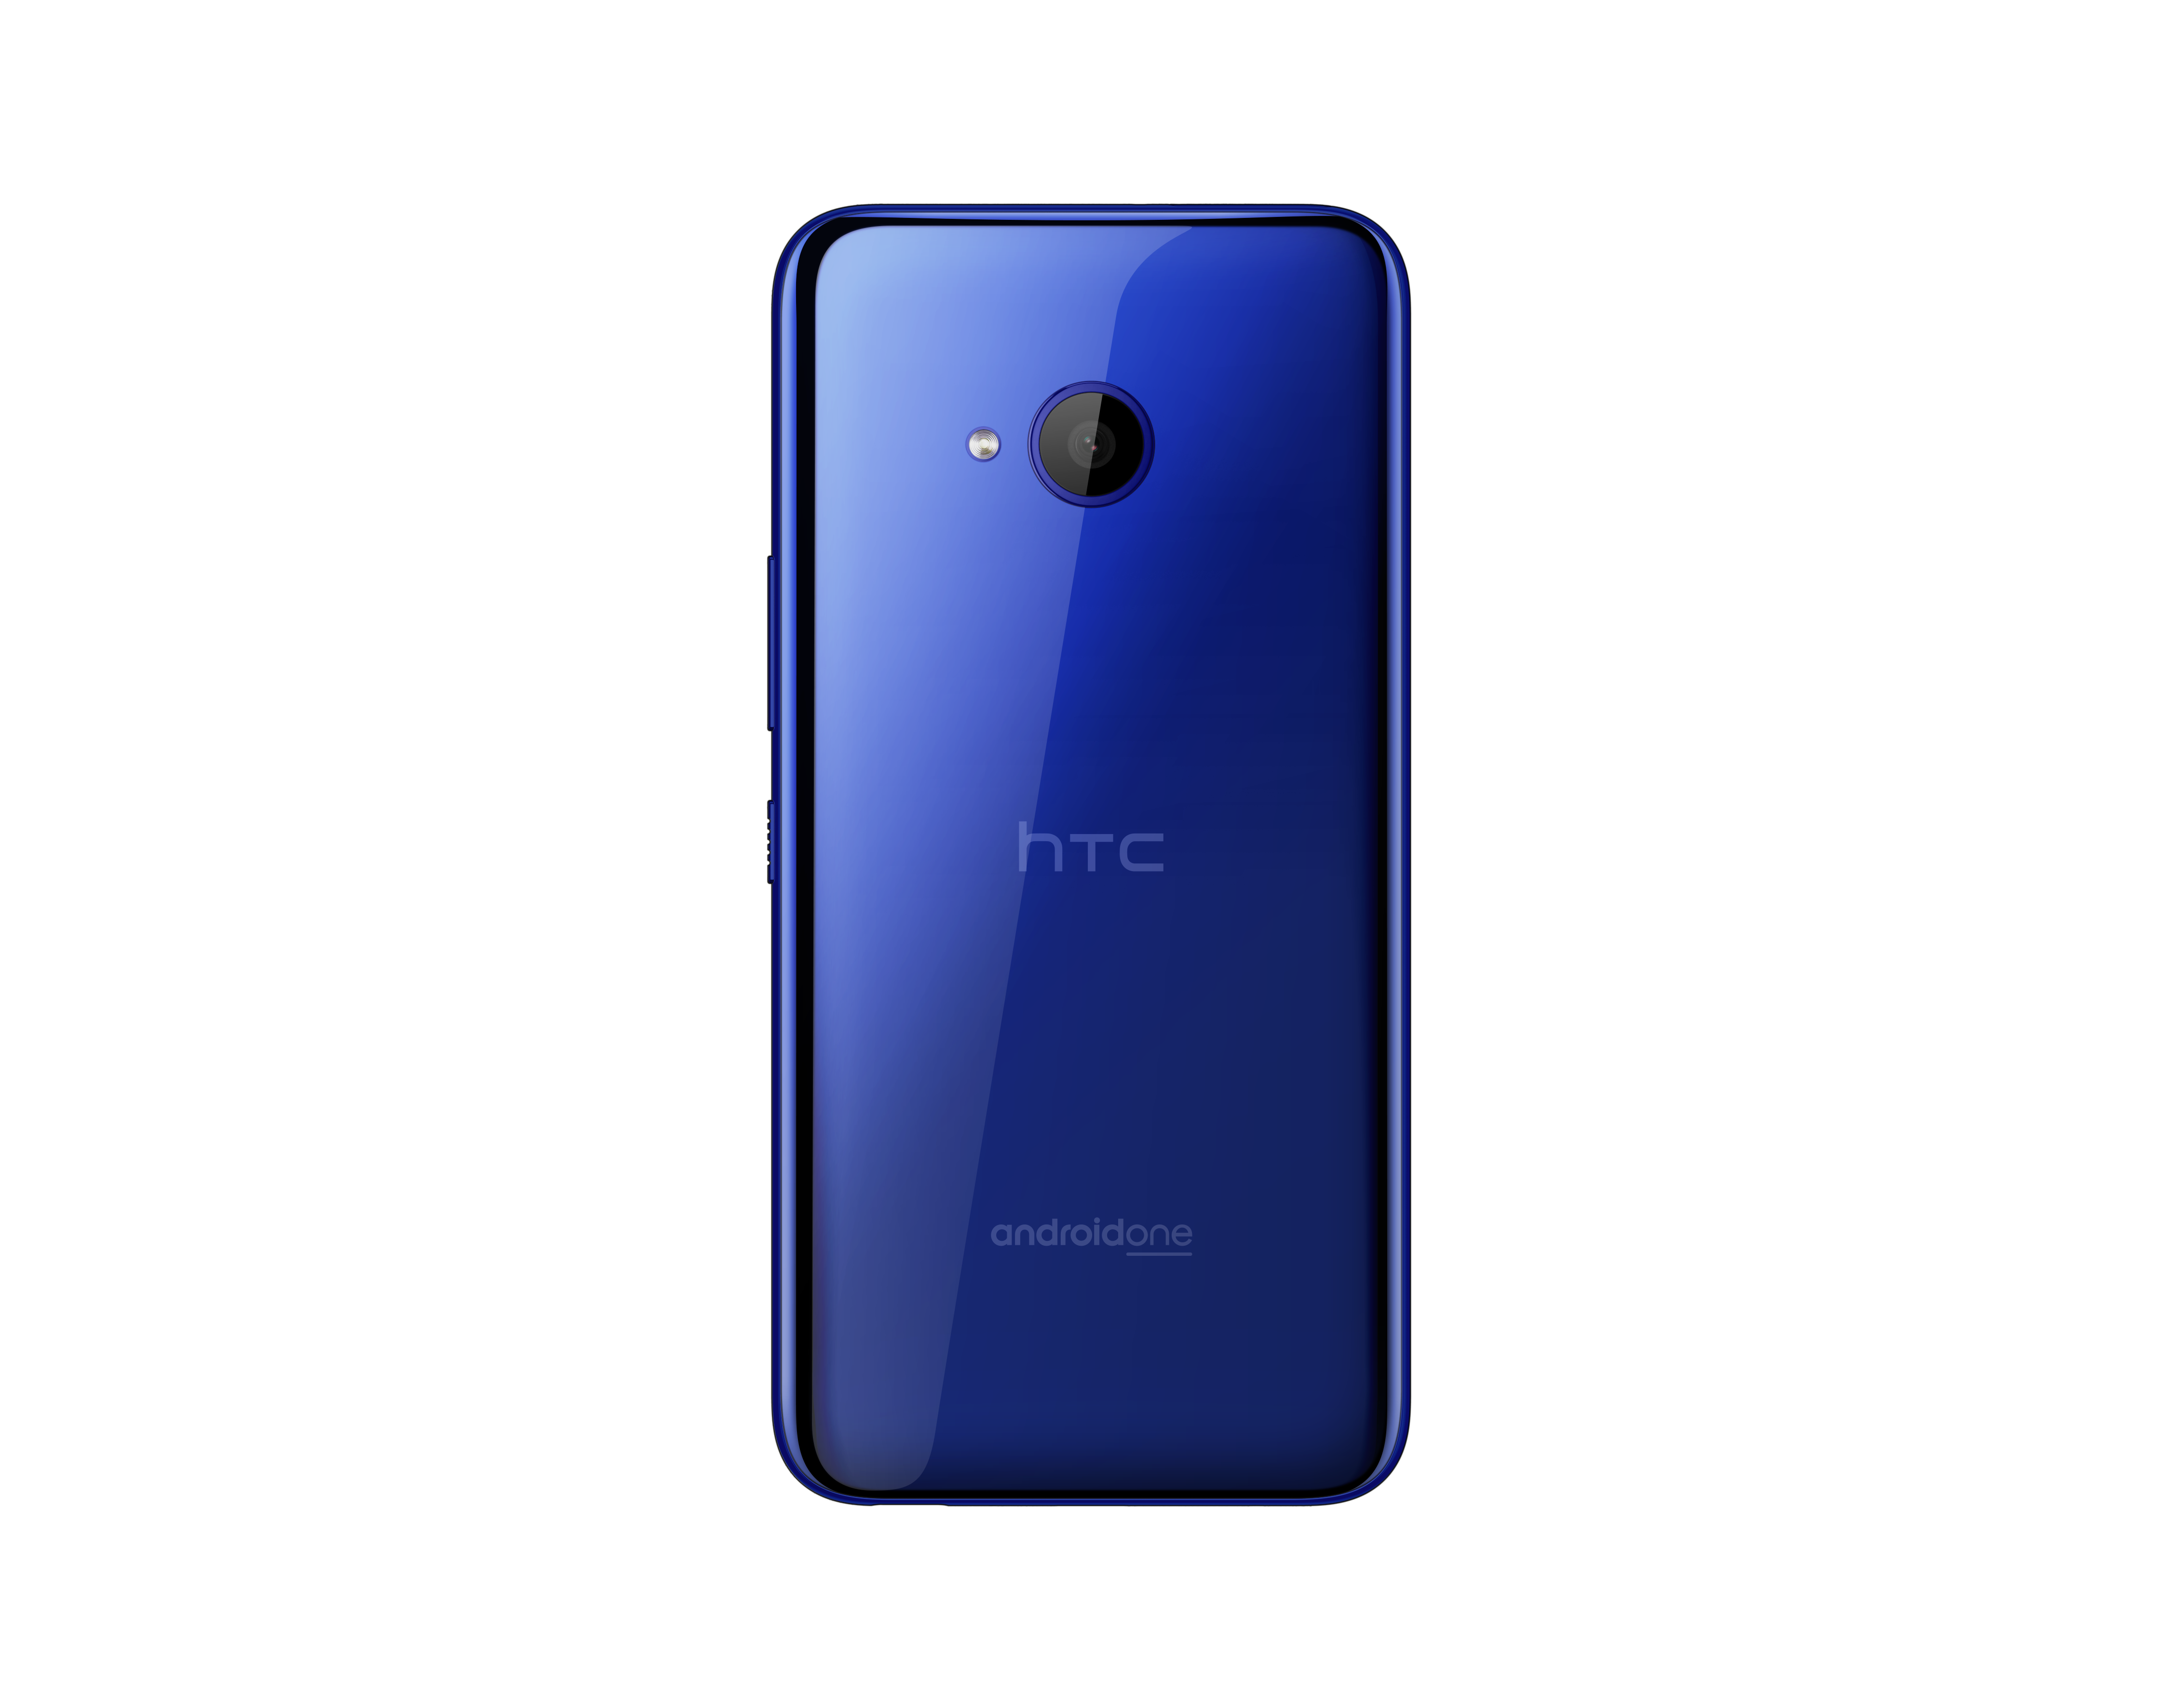 HTC U11 life avec Android One: Des innovations sans mettre ...